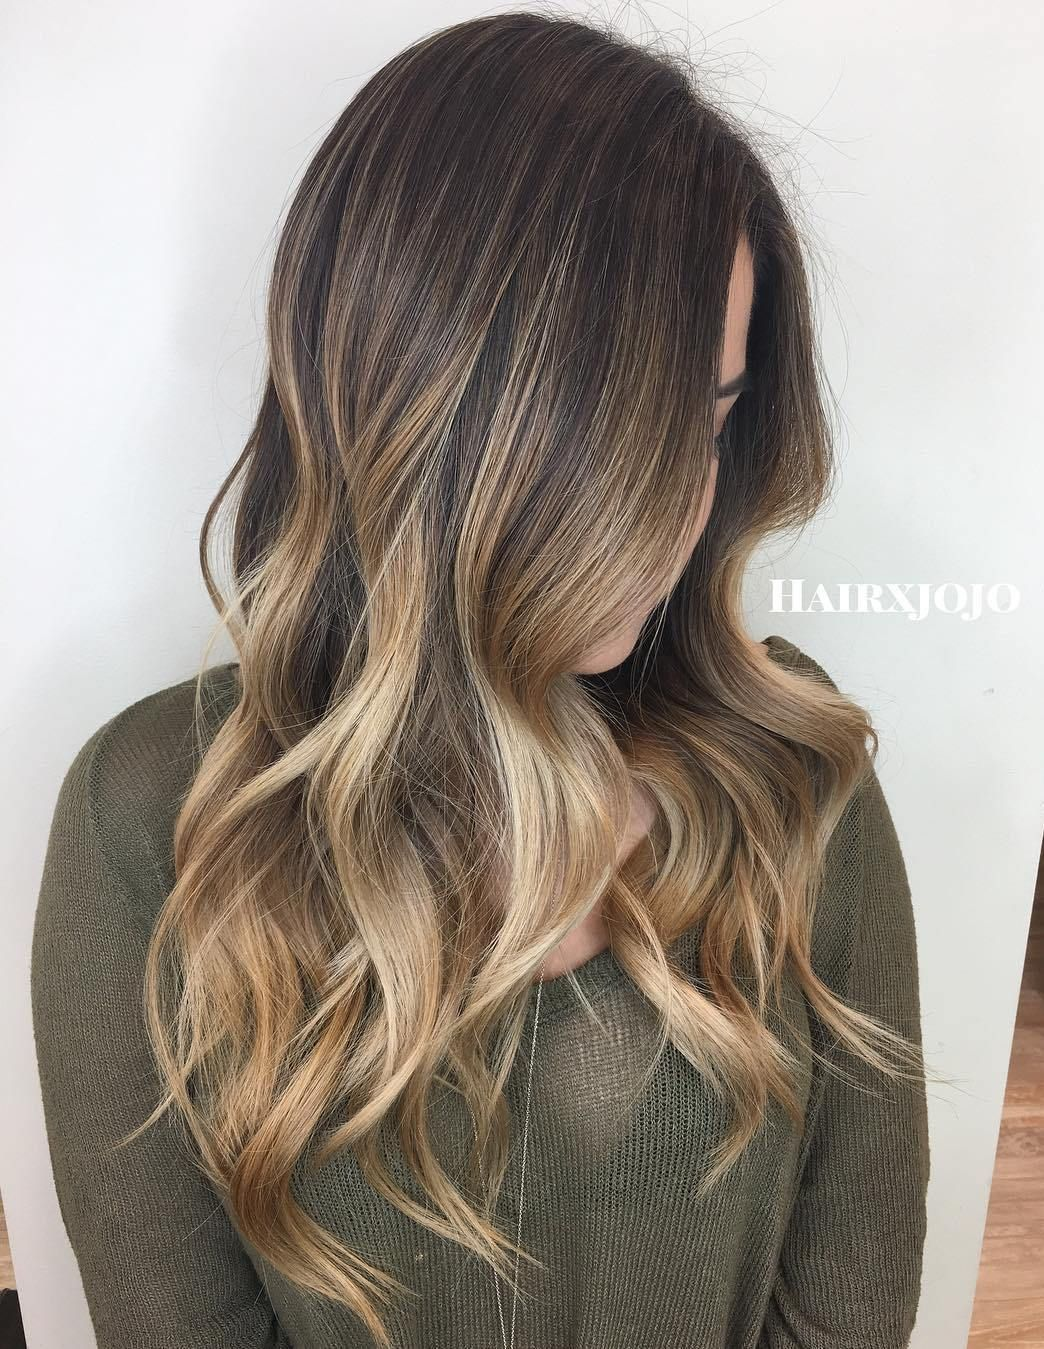 50 Ideas For Light Brown Hair With Highlights And Lowlights Brown Hair With Highlights Light Brown Hair Brown Ombre Hair